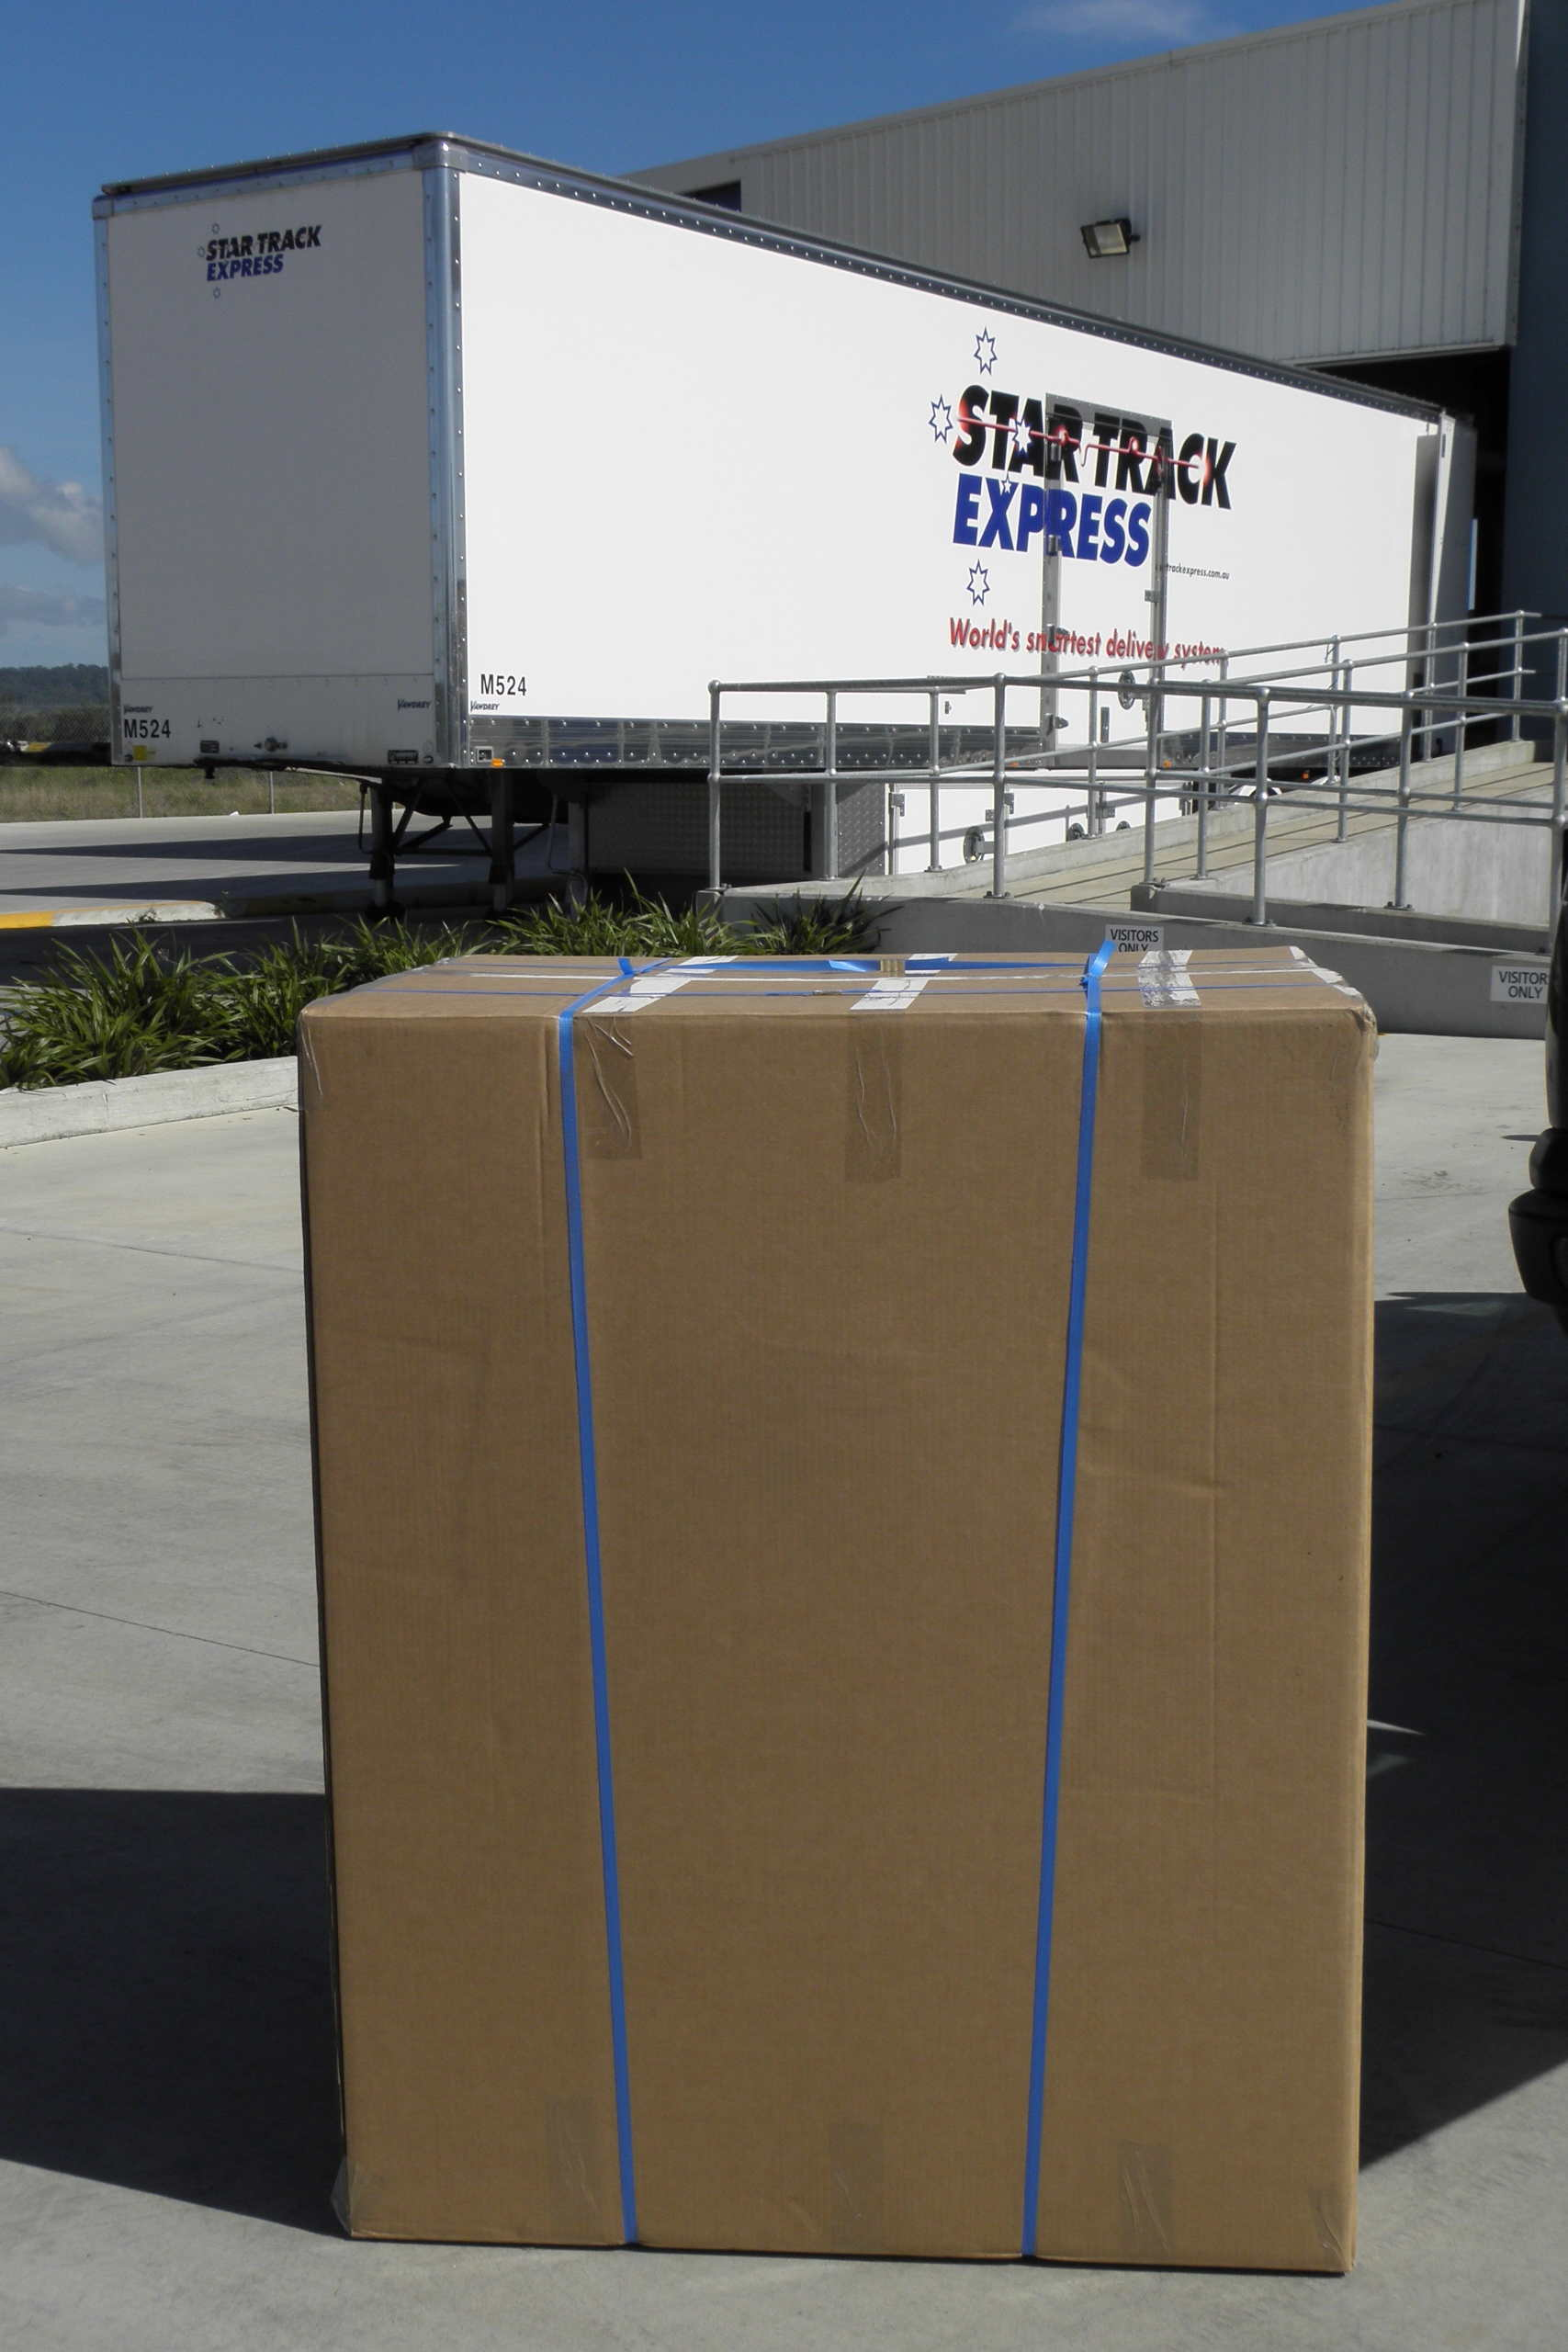 Image of carton ready to be shipped